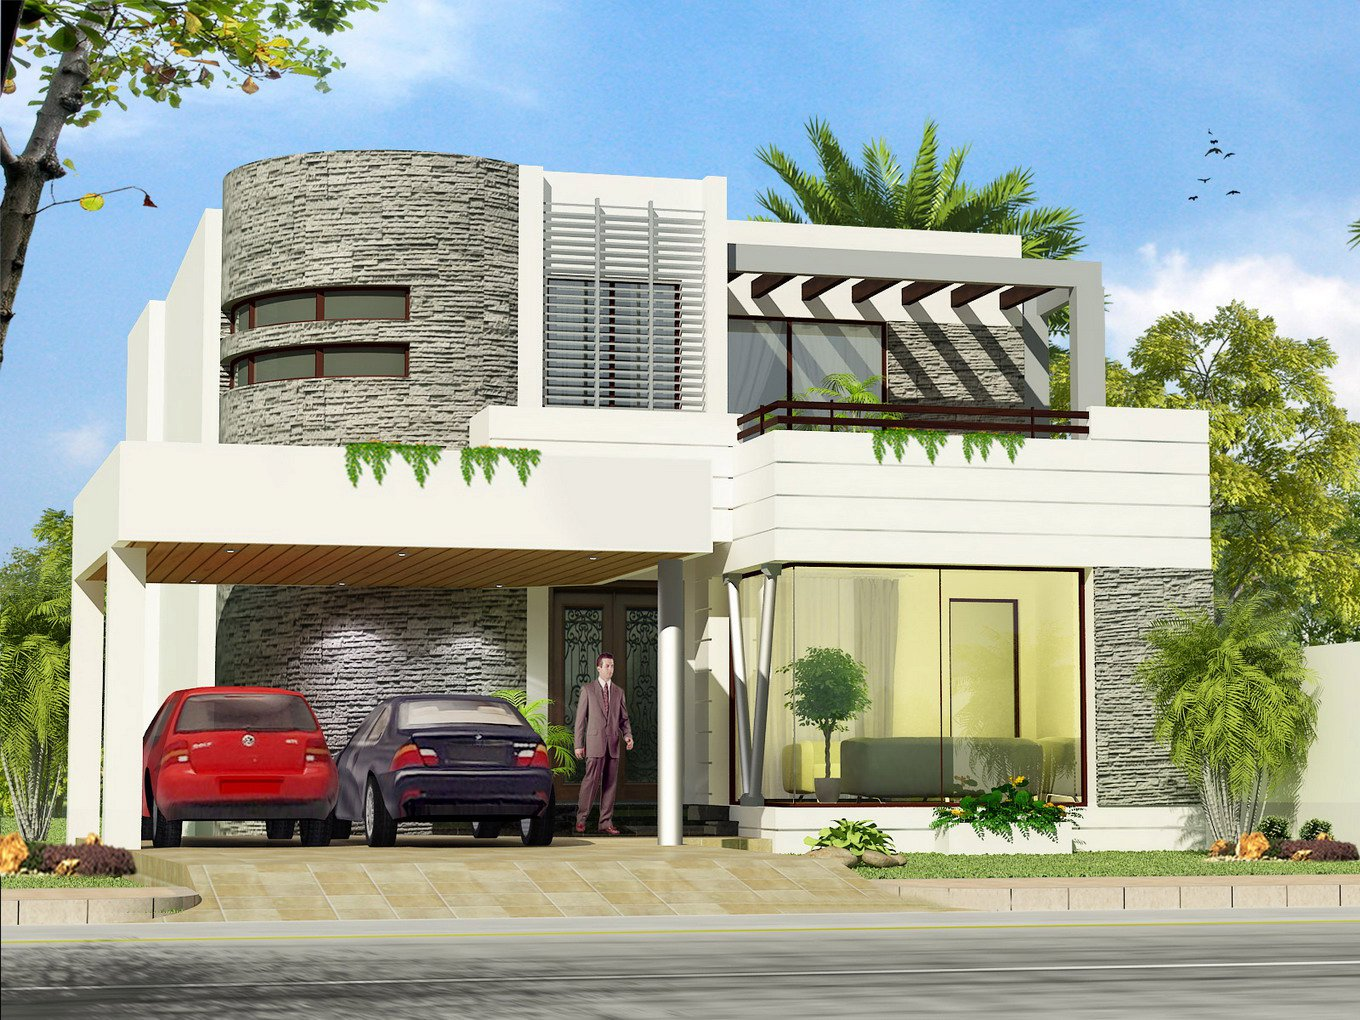 New home designs latest modern homes beautiful latest for New home exterior design ideas